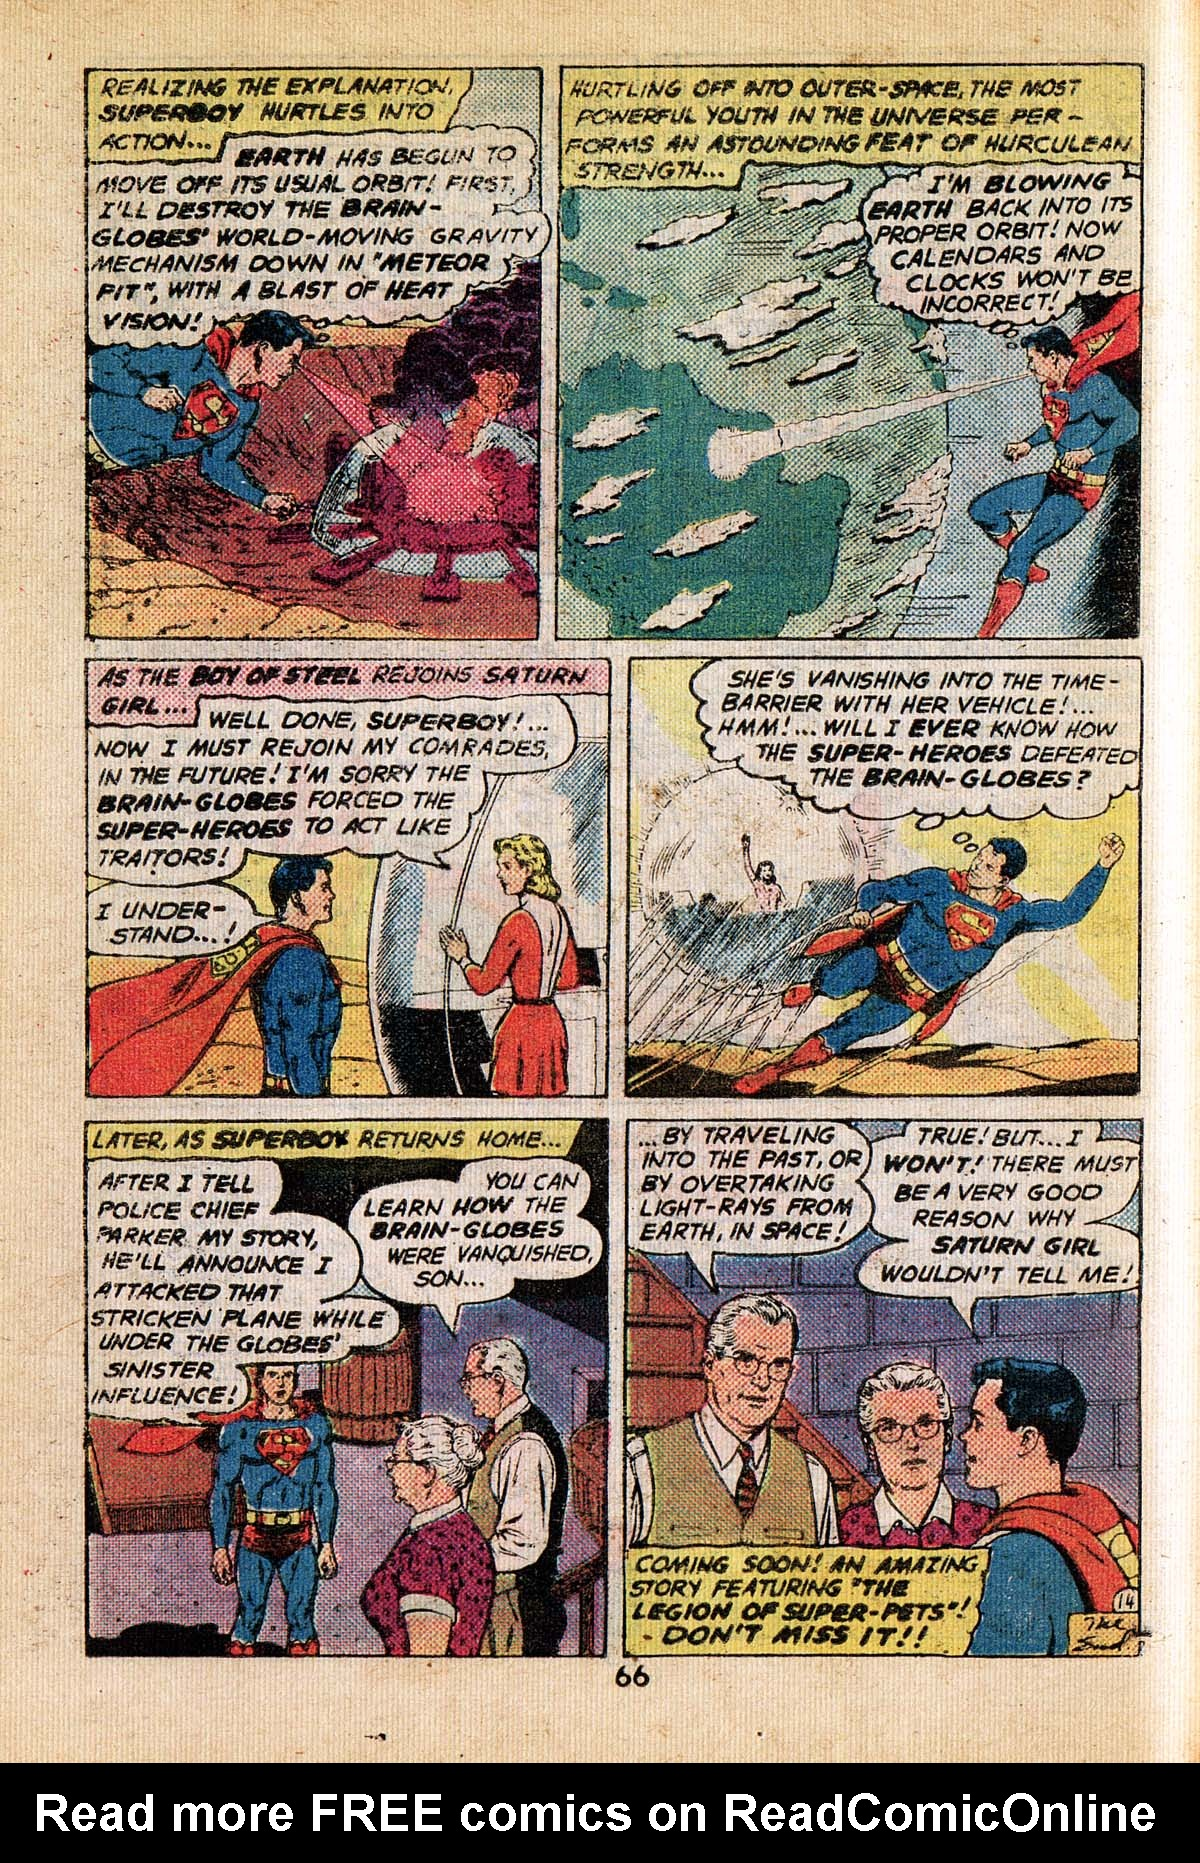 Read online Adventure Comics (1938) comic -  Issue #495 - 66